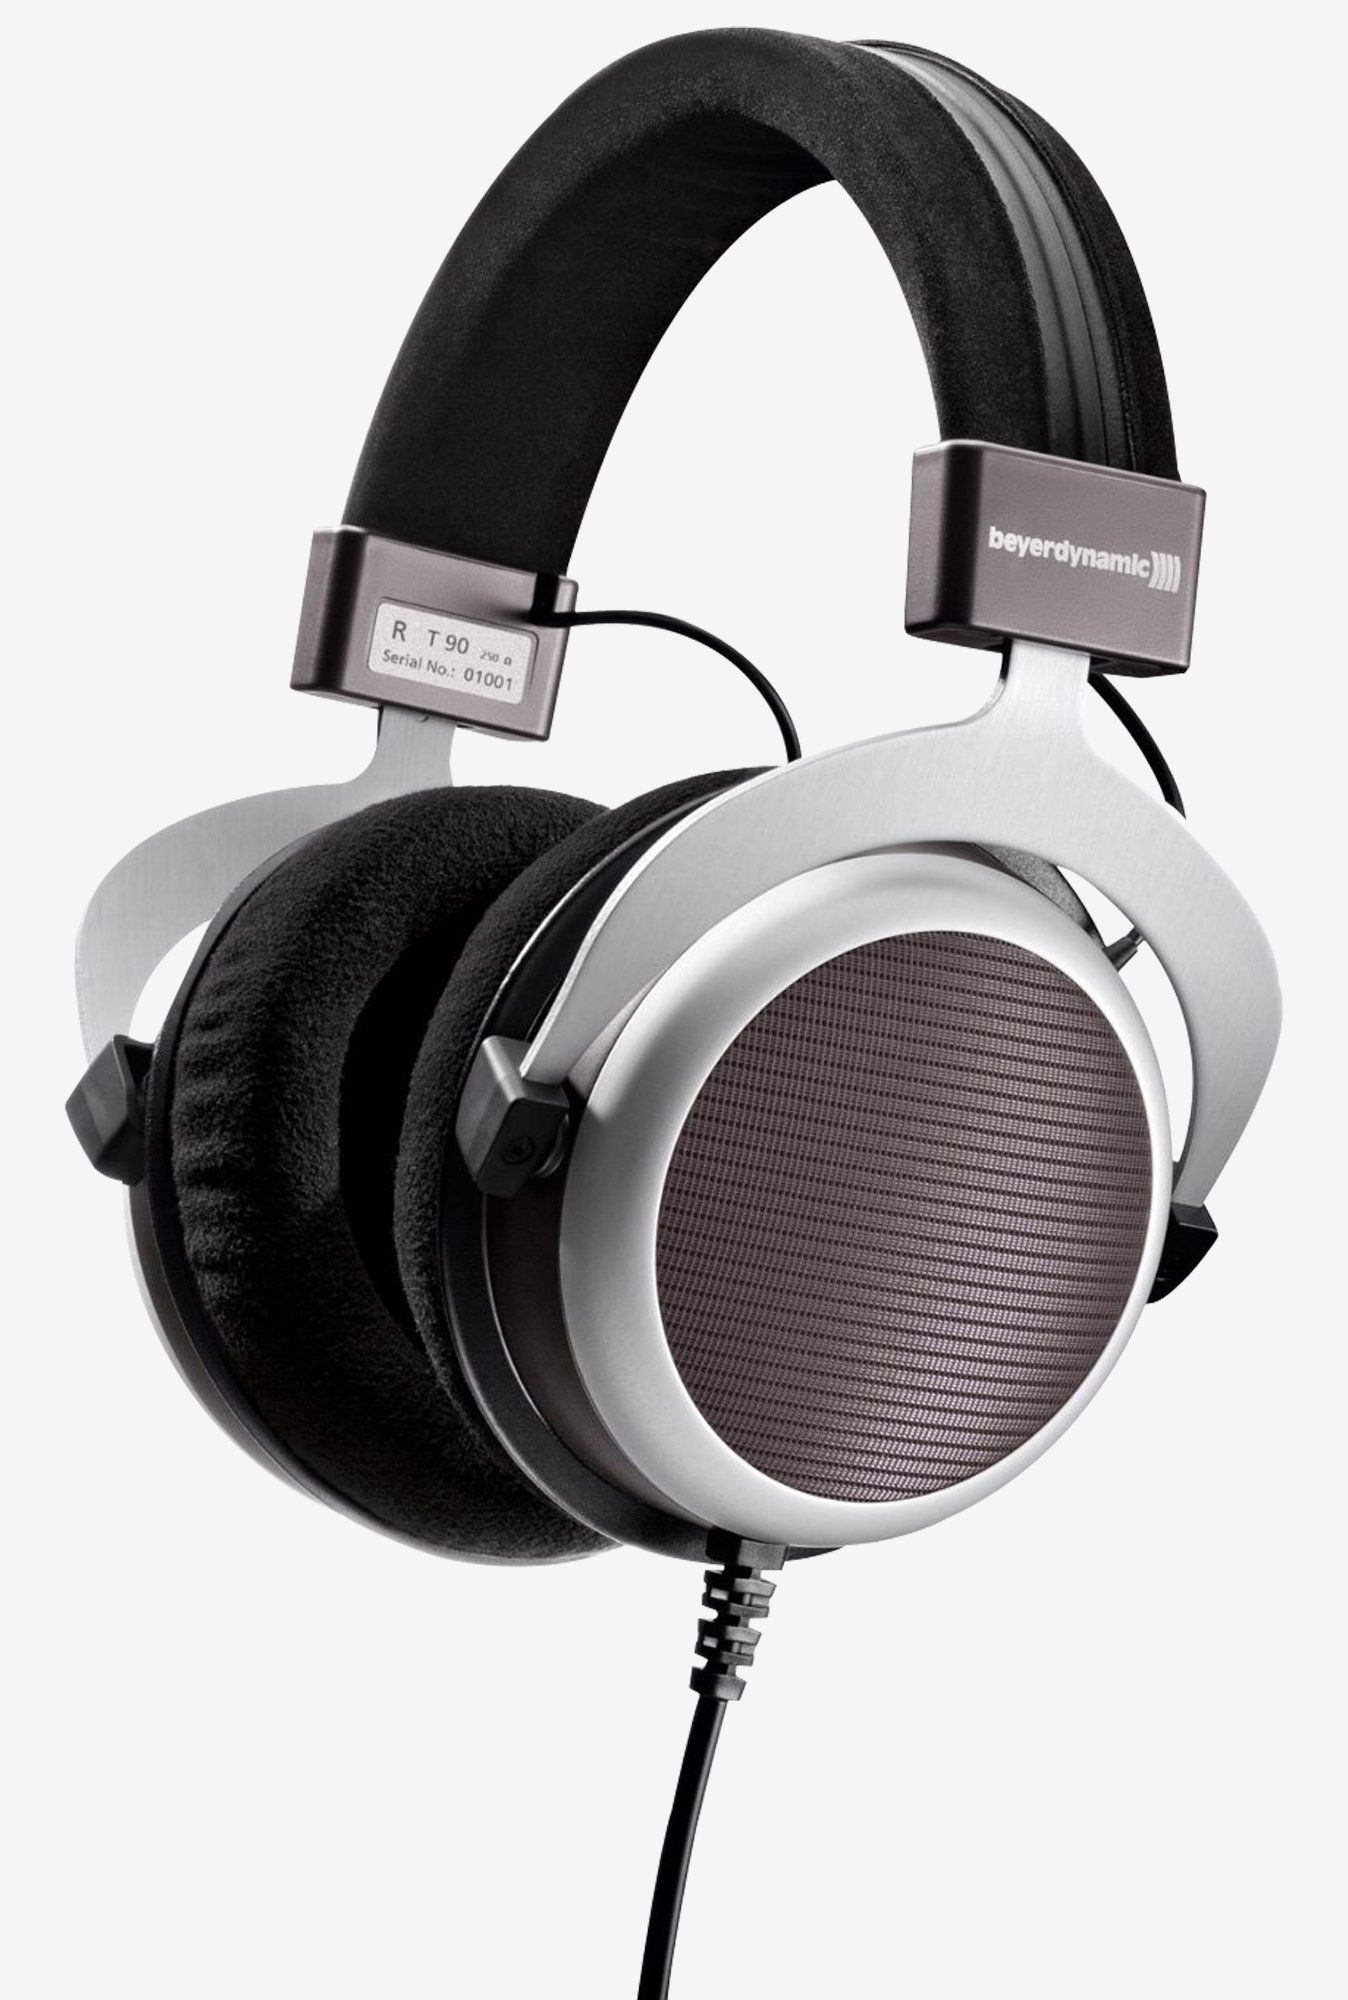 Beyerdynamic T90 High End Headphone